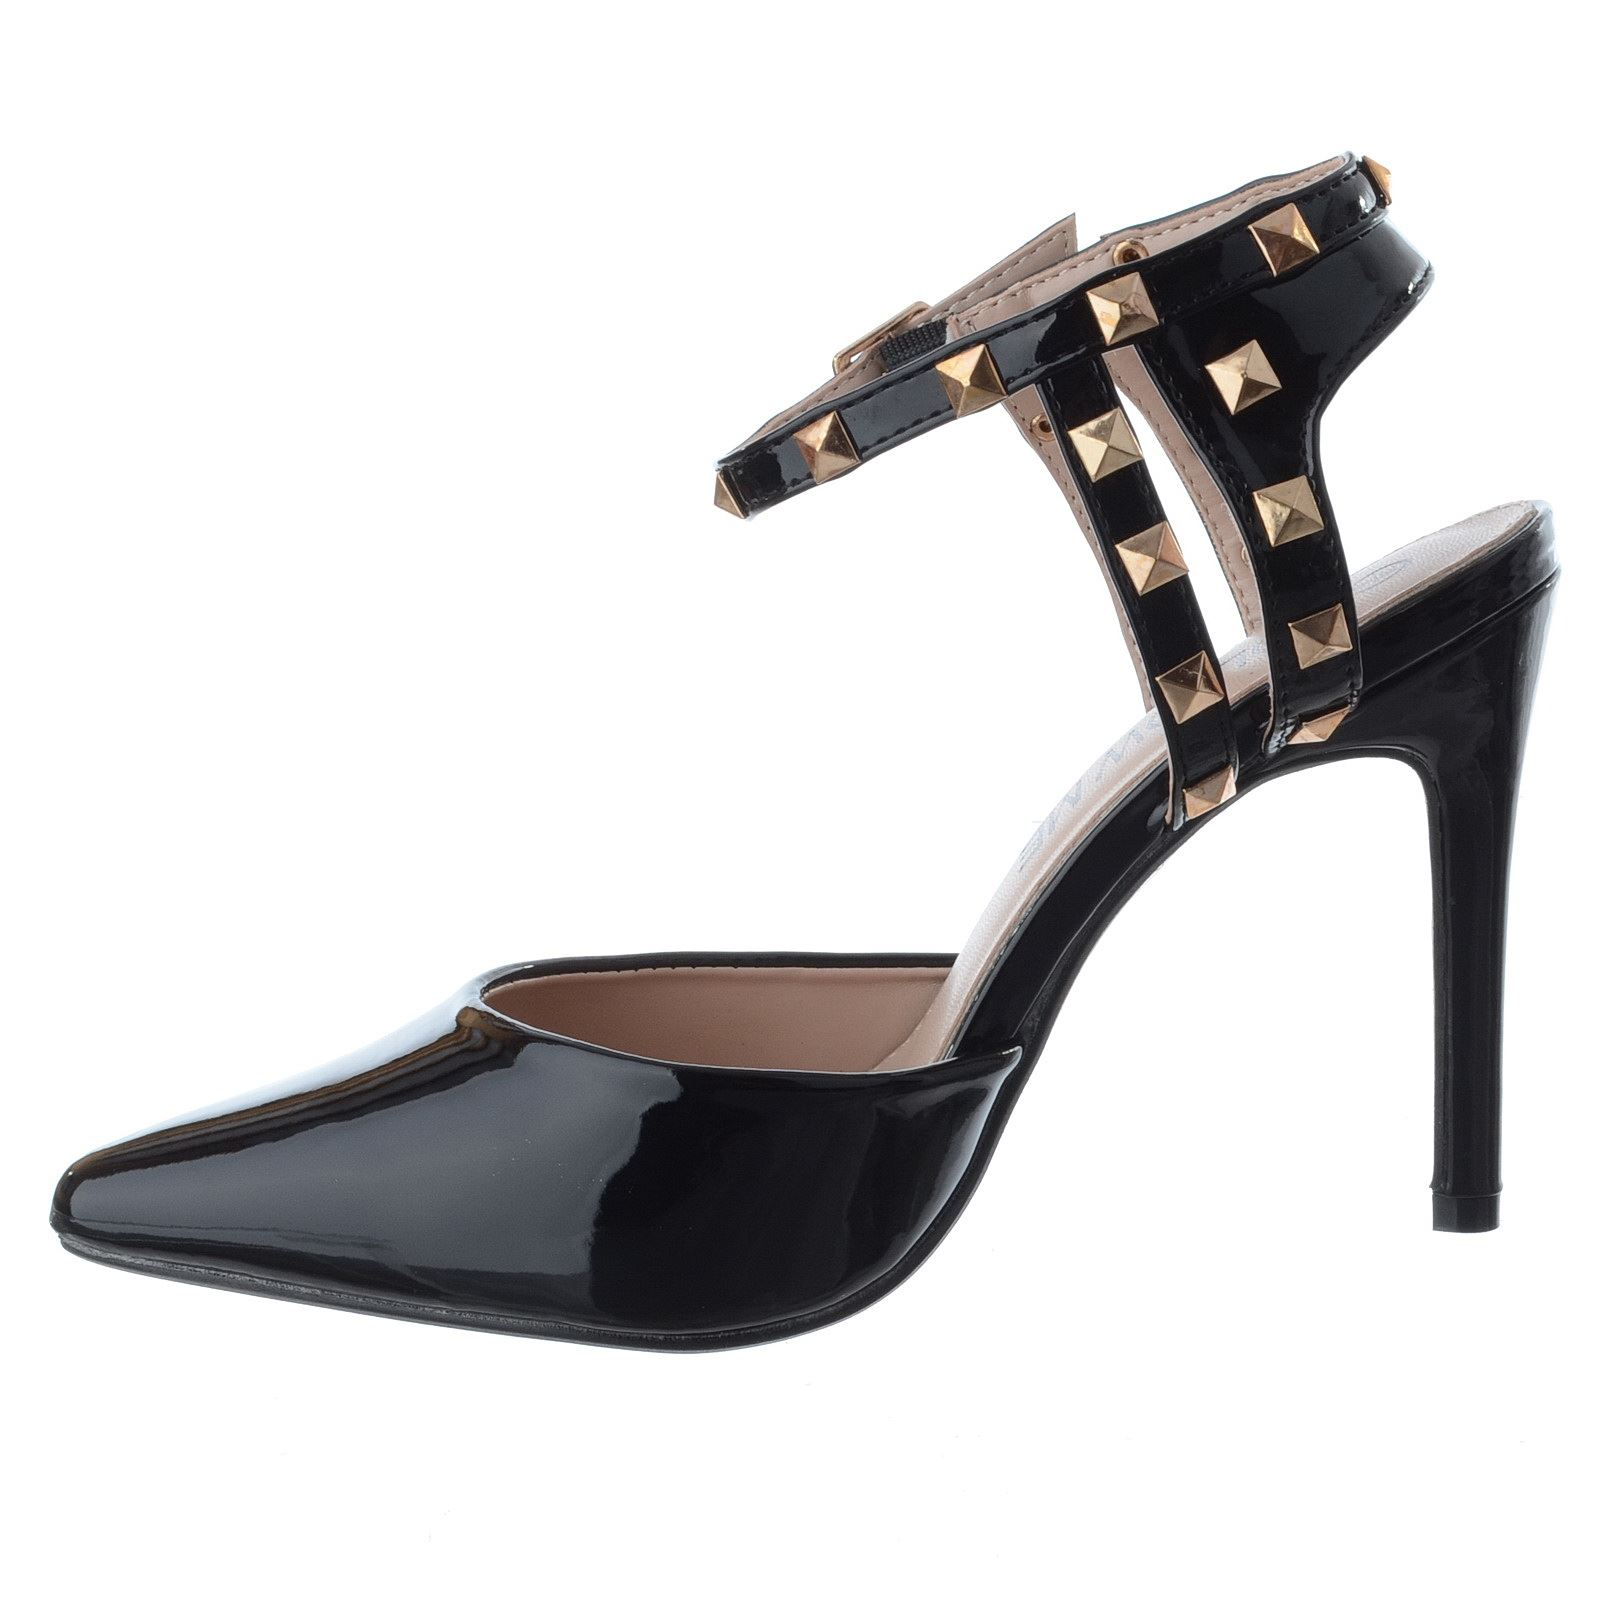 NEW WOMENS LADIES ANKLE STRAP STUD HIGH STILETTO HEEL POINTY SANDALS SHOES SIZE